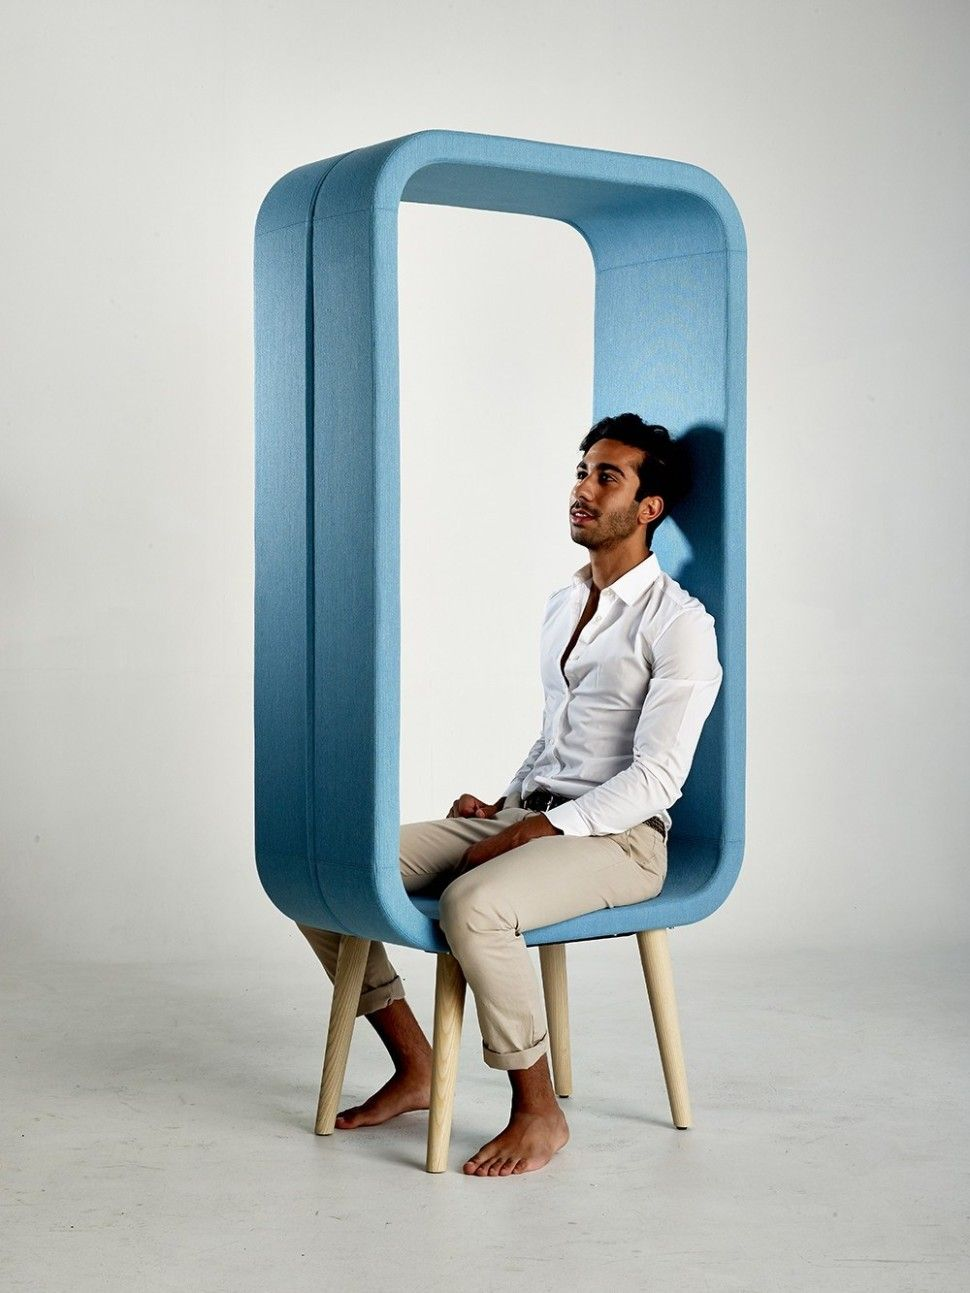 Architecture Stunning Furniture Design Frame Chair Combined With